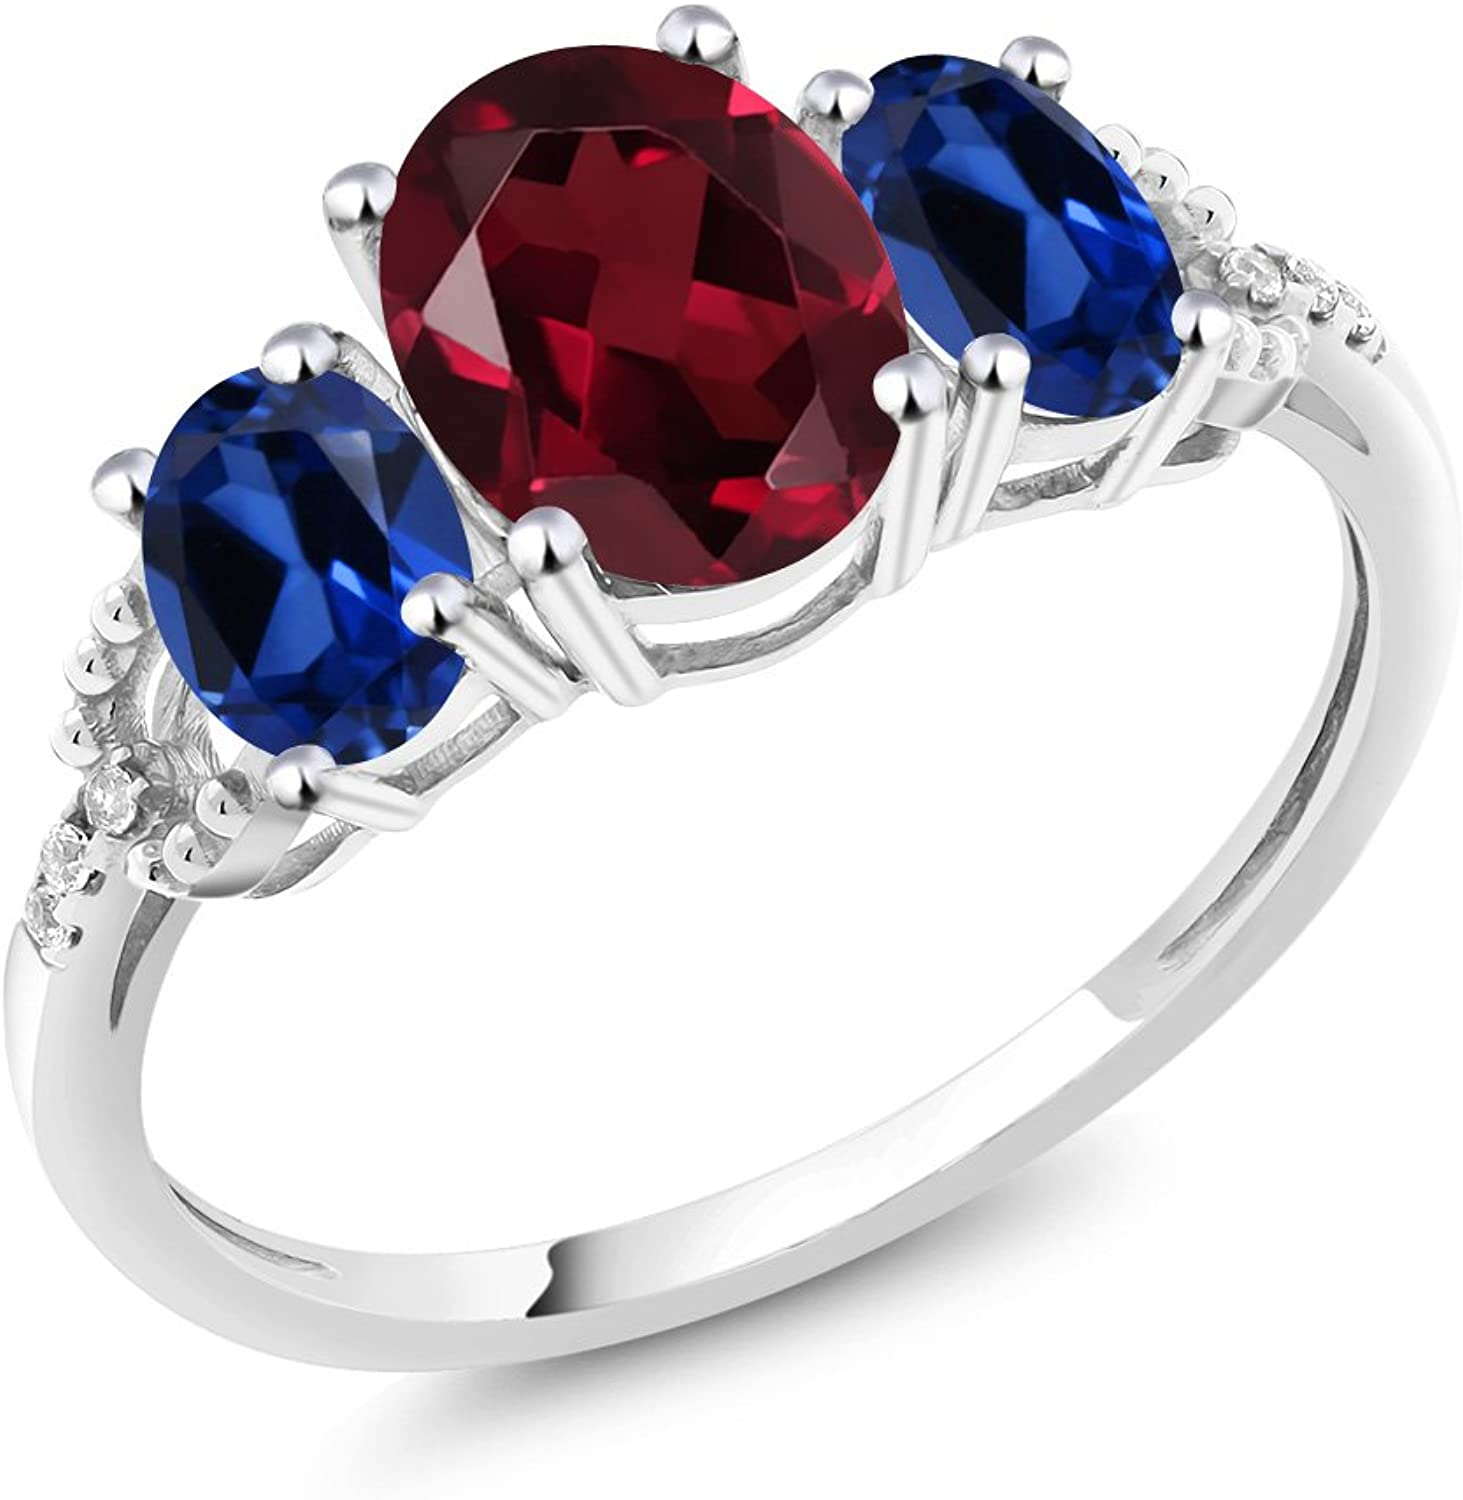 10K White gold Diamond Accent ThreeStone Engagement Ring set with 2.40 Ct Red Rhodolite Garnet & bluee Simulated Sapphire